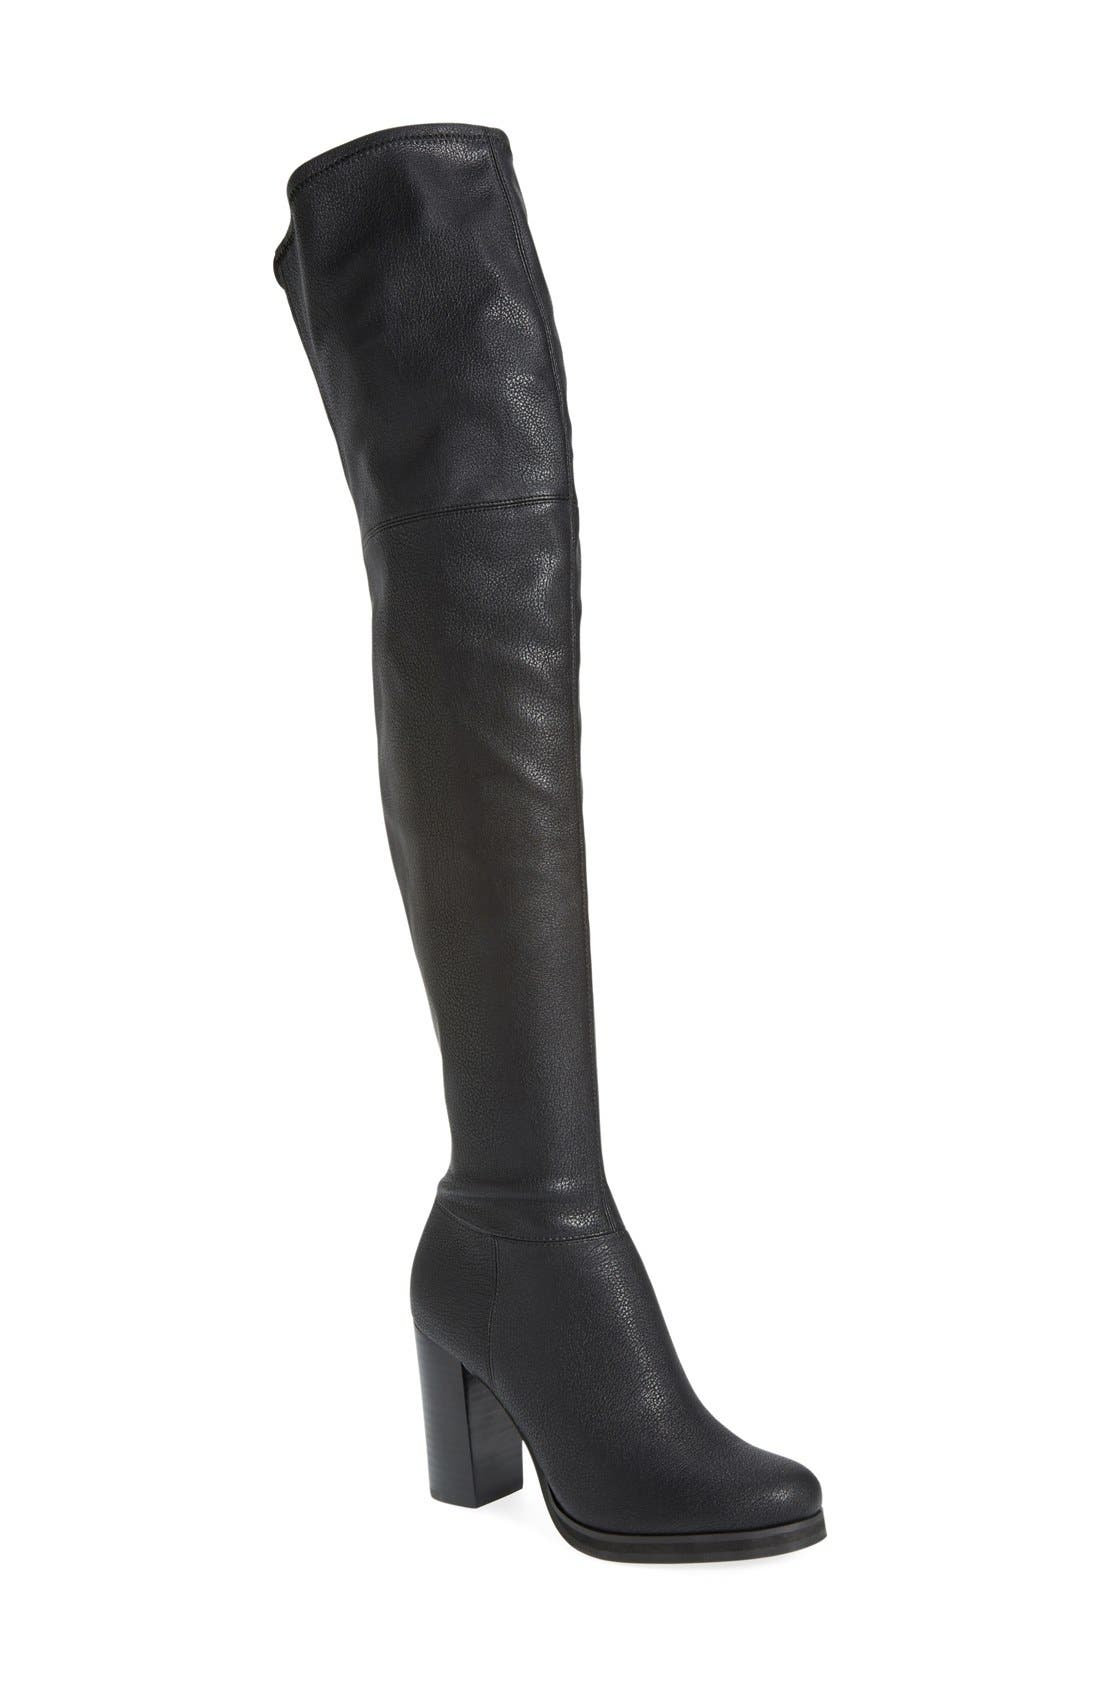 'Bisma' Over the Knee Boot,                         Main,                         color, Black Pebbled Stretch